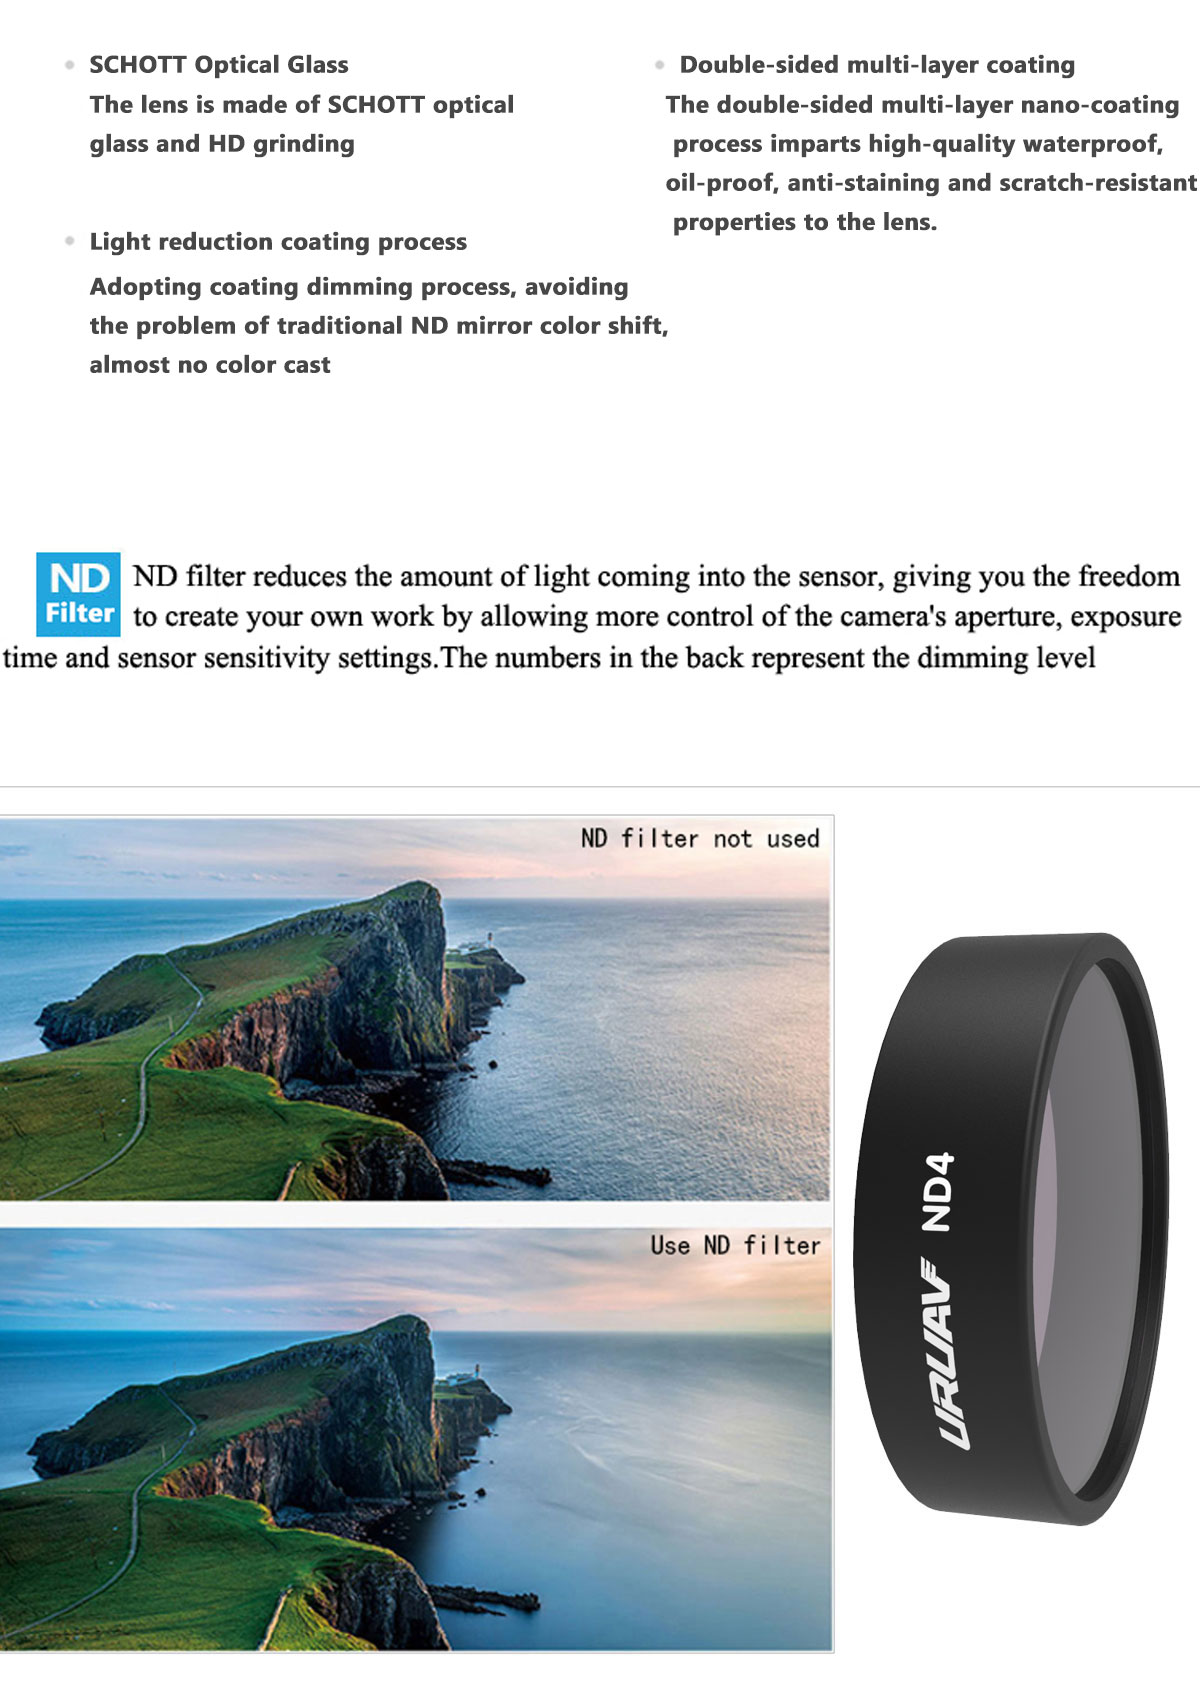 URUAV ND Lens Filter ND4/ND8/ND16/ND32 for Xiaomi FIMI X8 SE HD 4K Camera - Photo: 2